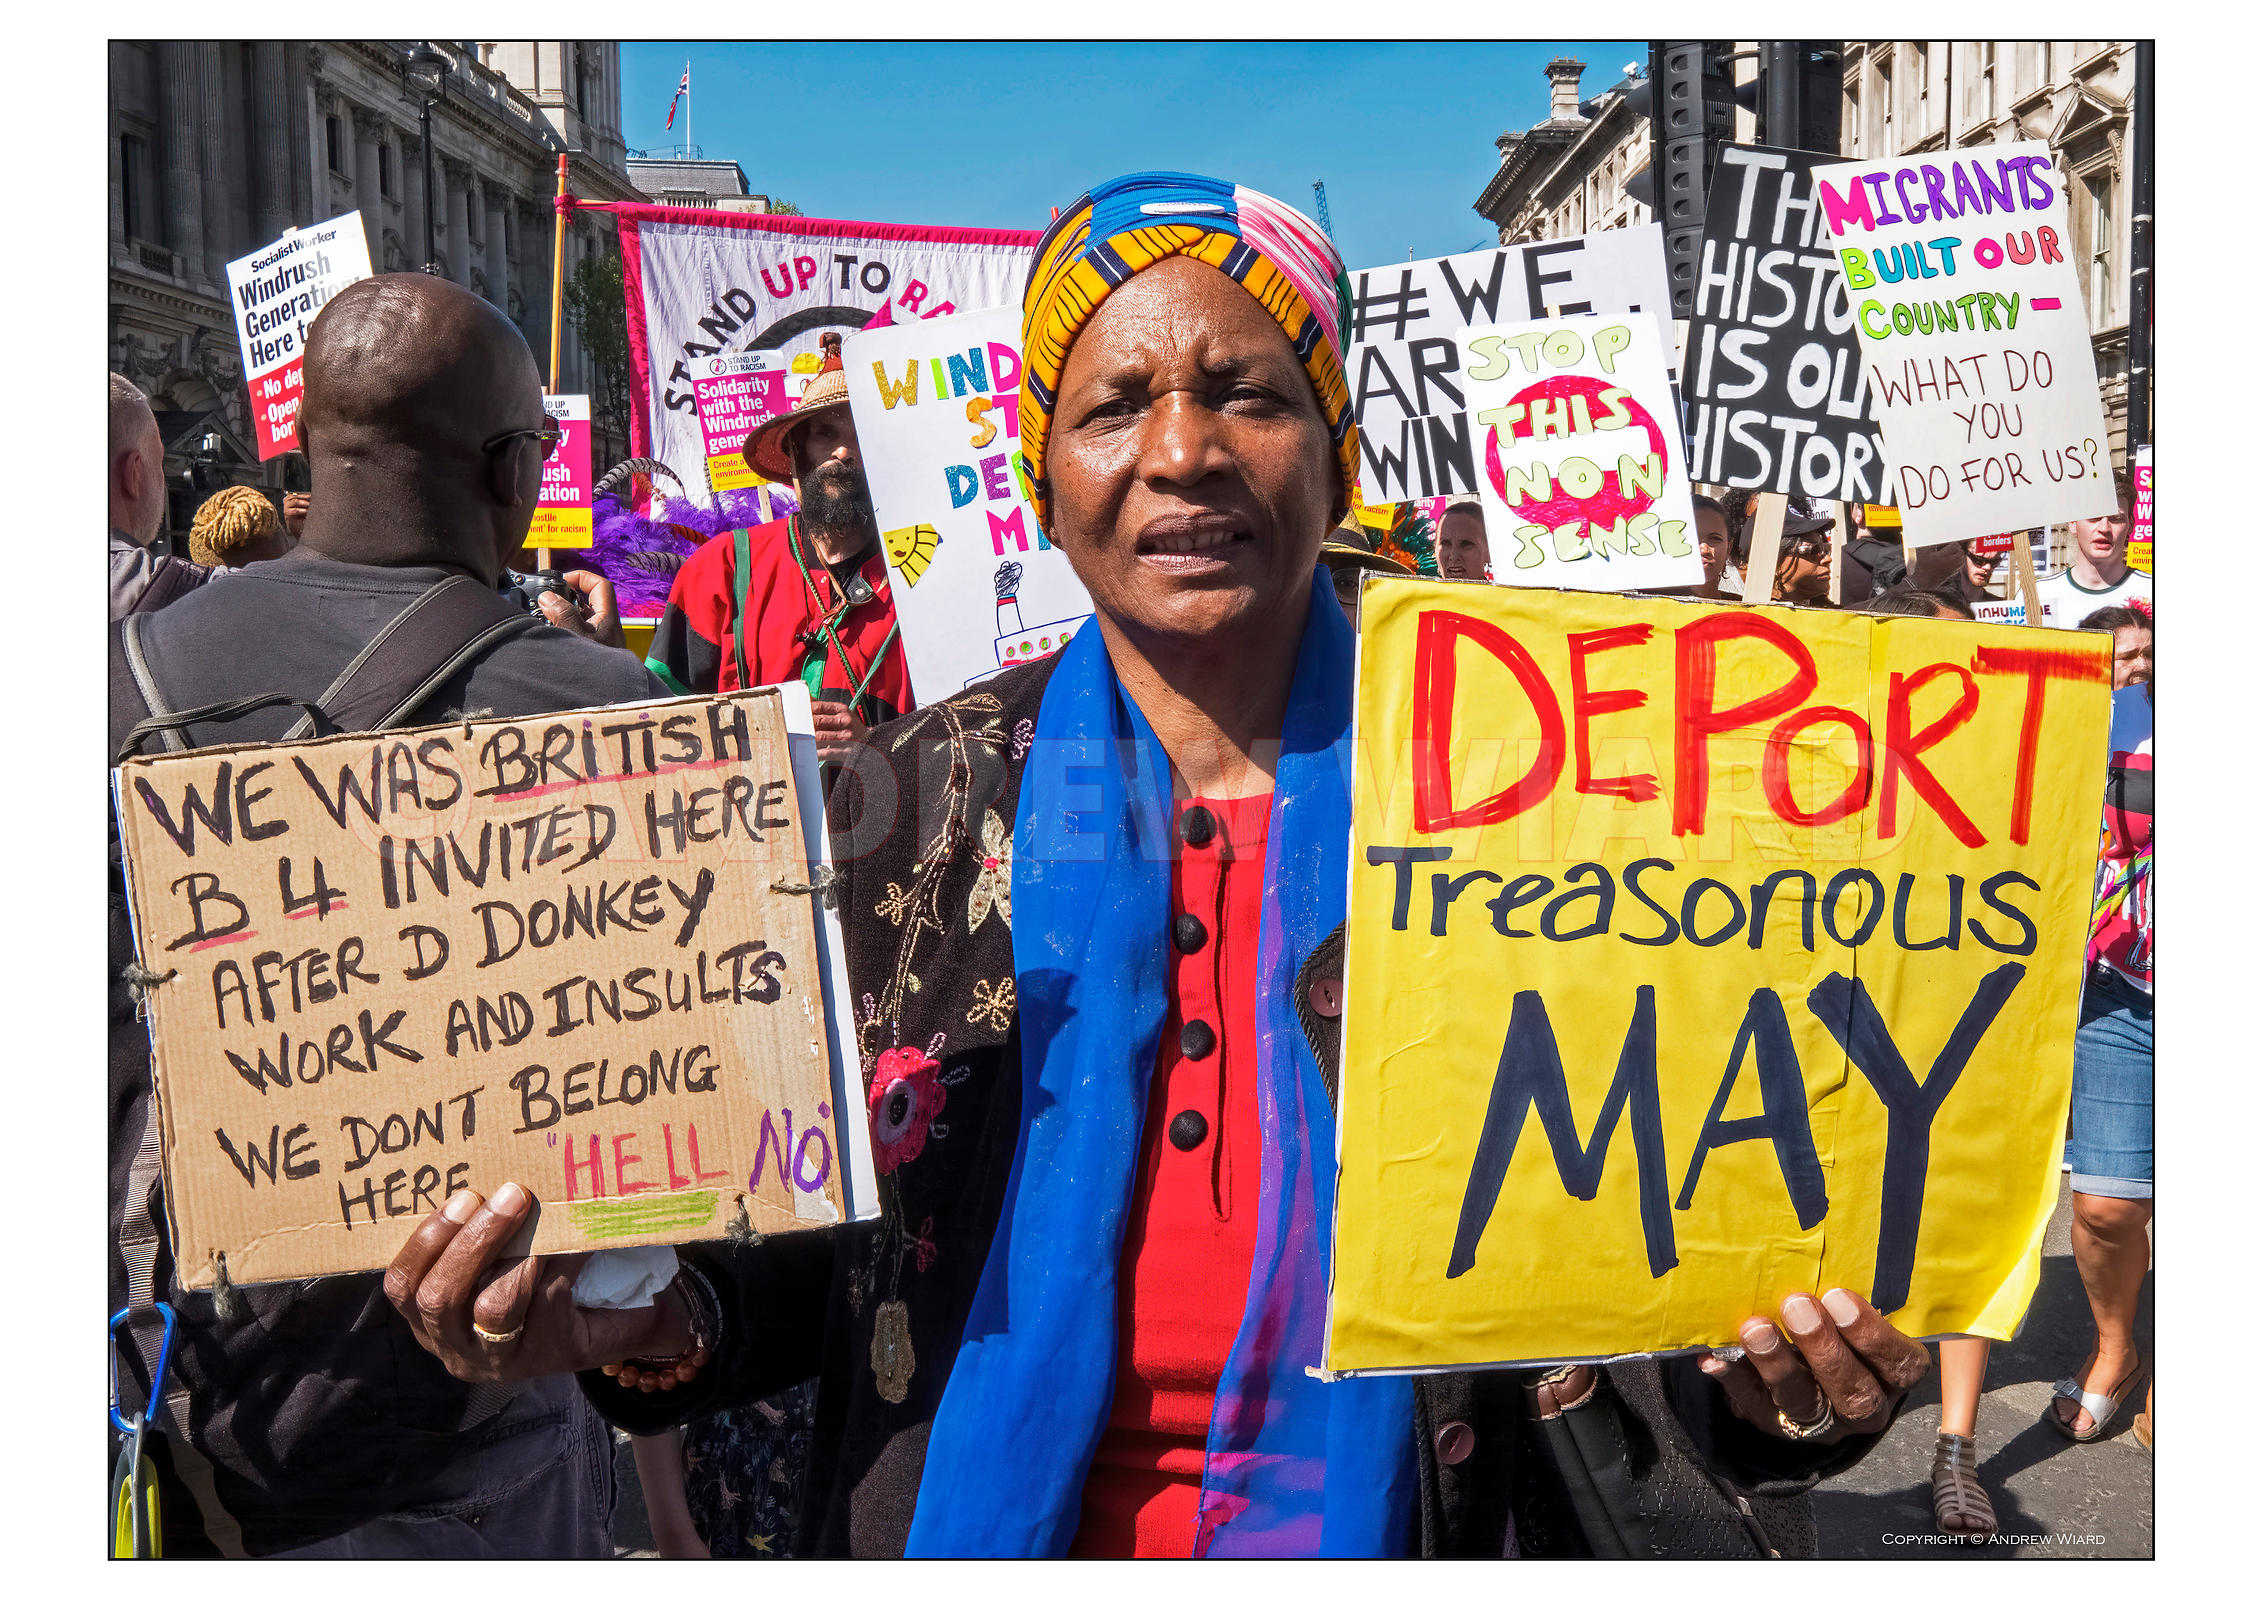 Justice for the Windrush generation